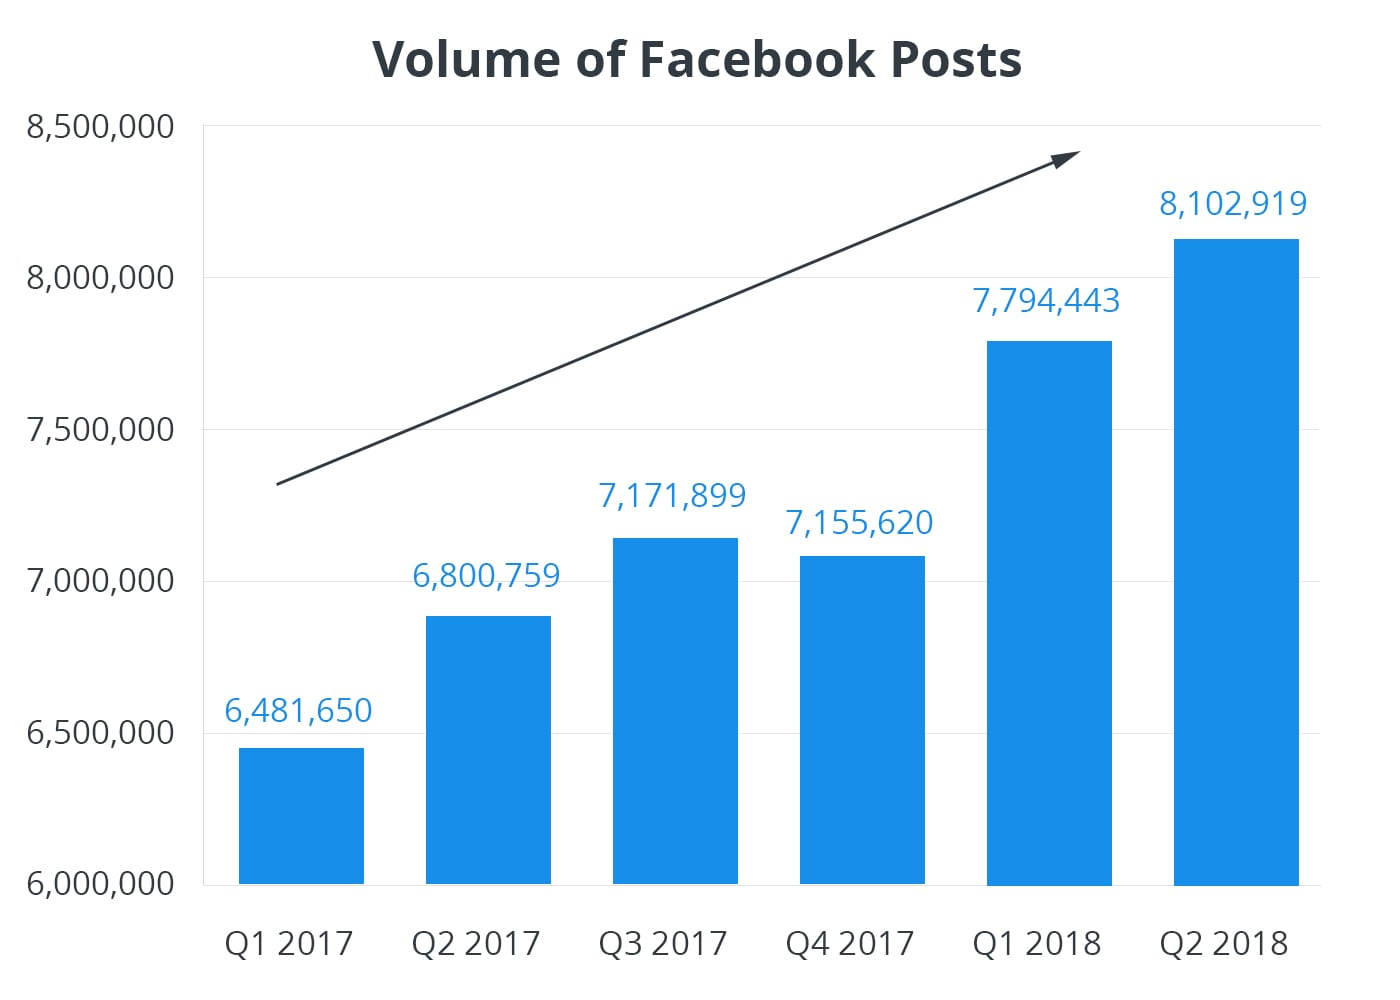 Volume-of-Facebook-Posts